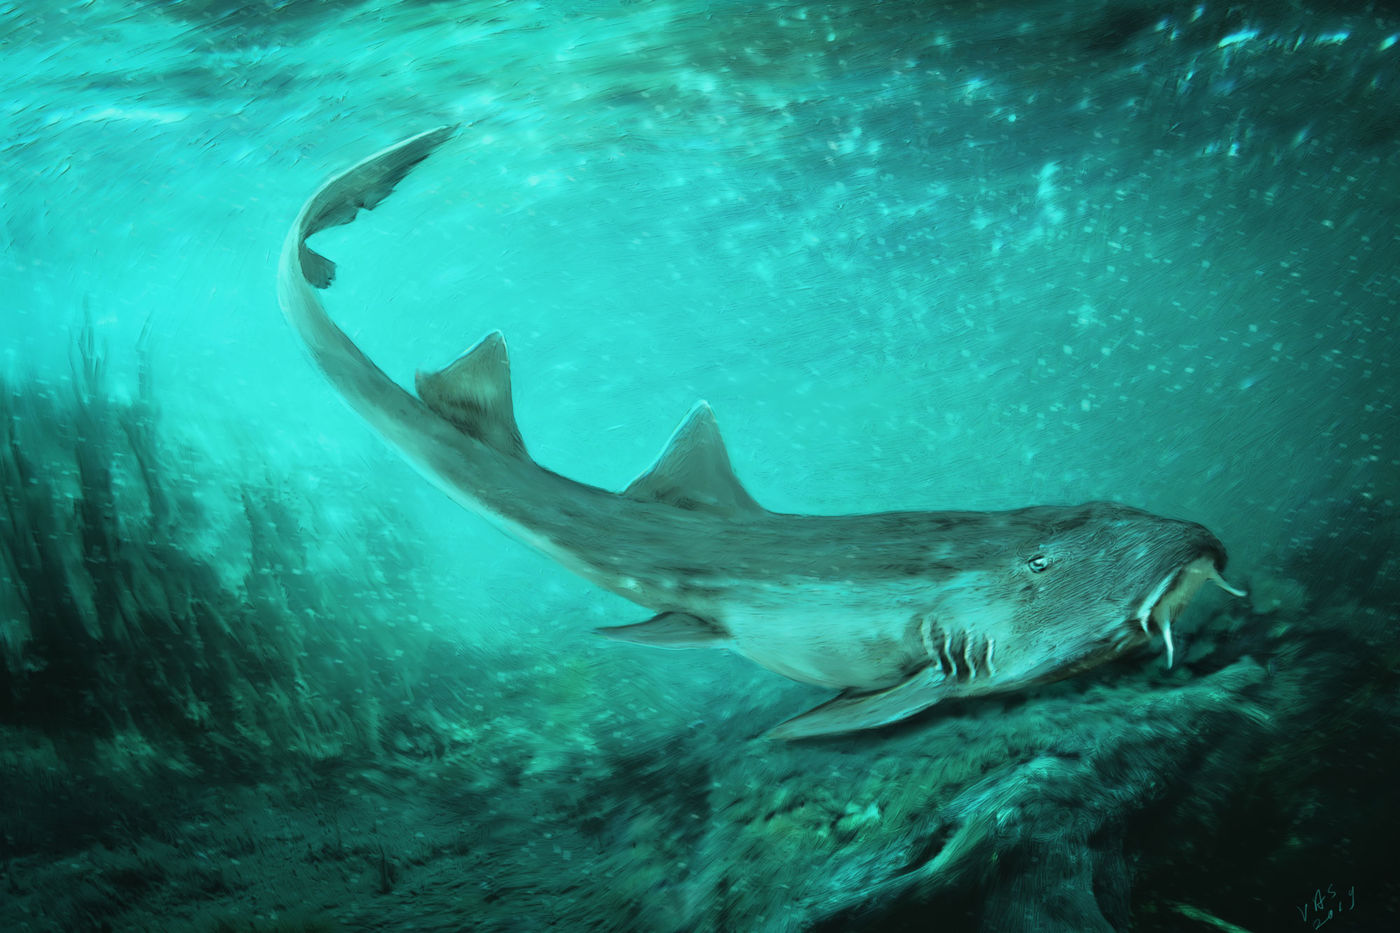 Illustration of a small shark on the sea floor, with a greenish tint to the water.